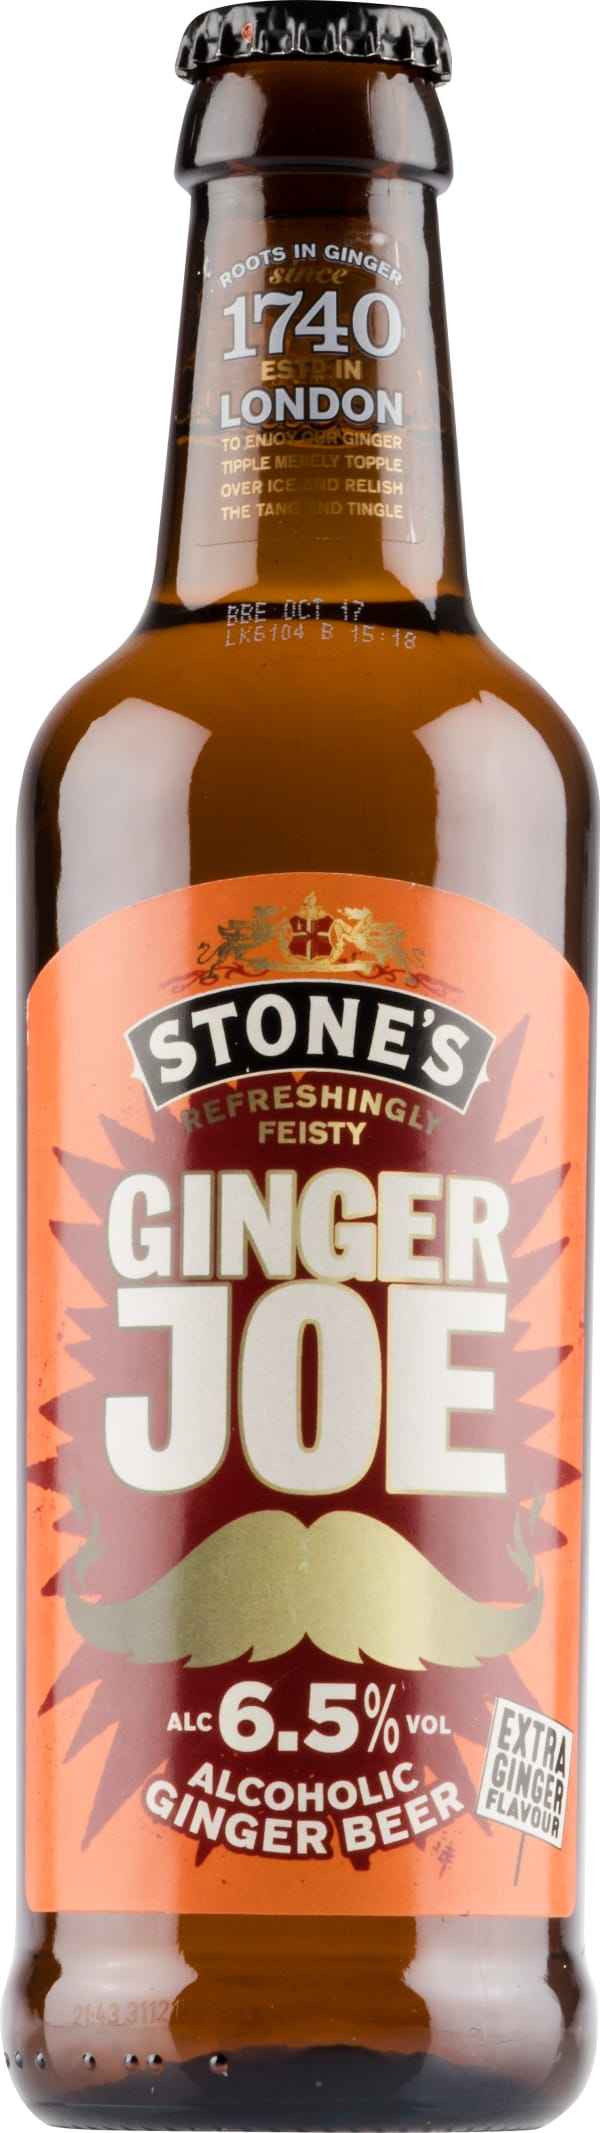 Stone's Ginger Joe Strong